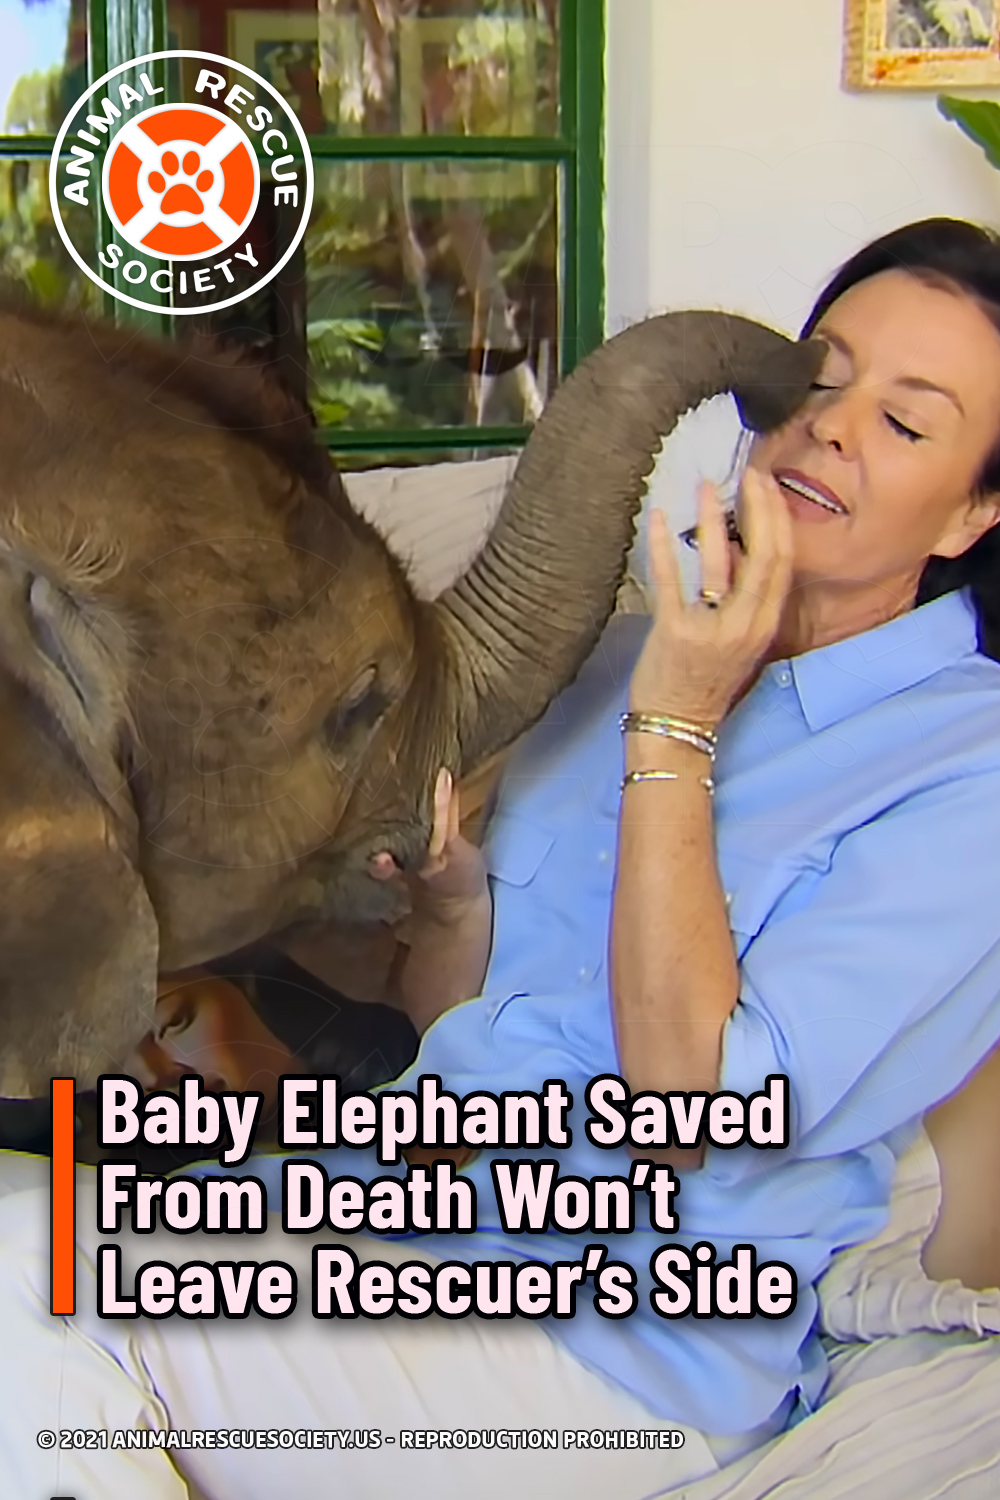 Baby Elephant Saved From Death Won't Leave Rescuer's Side